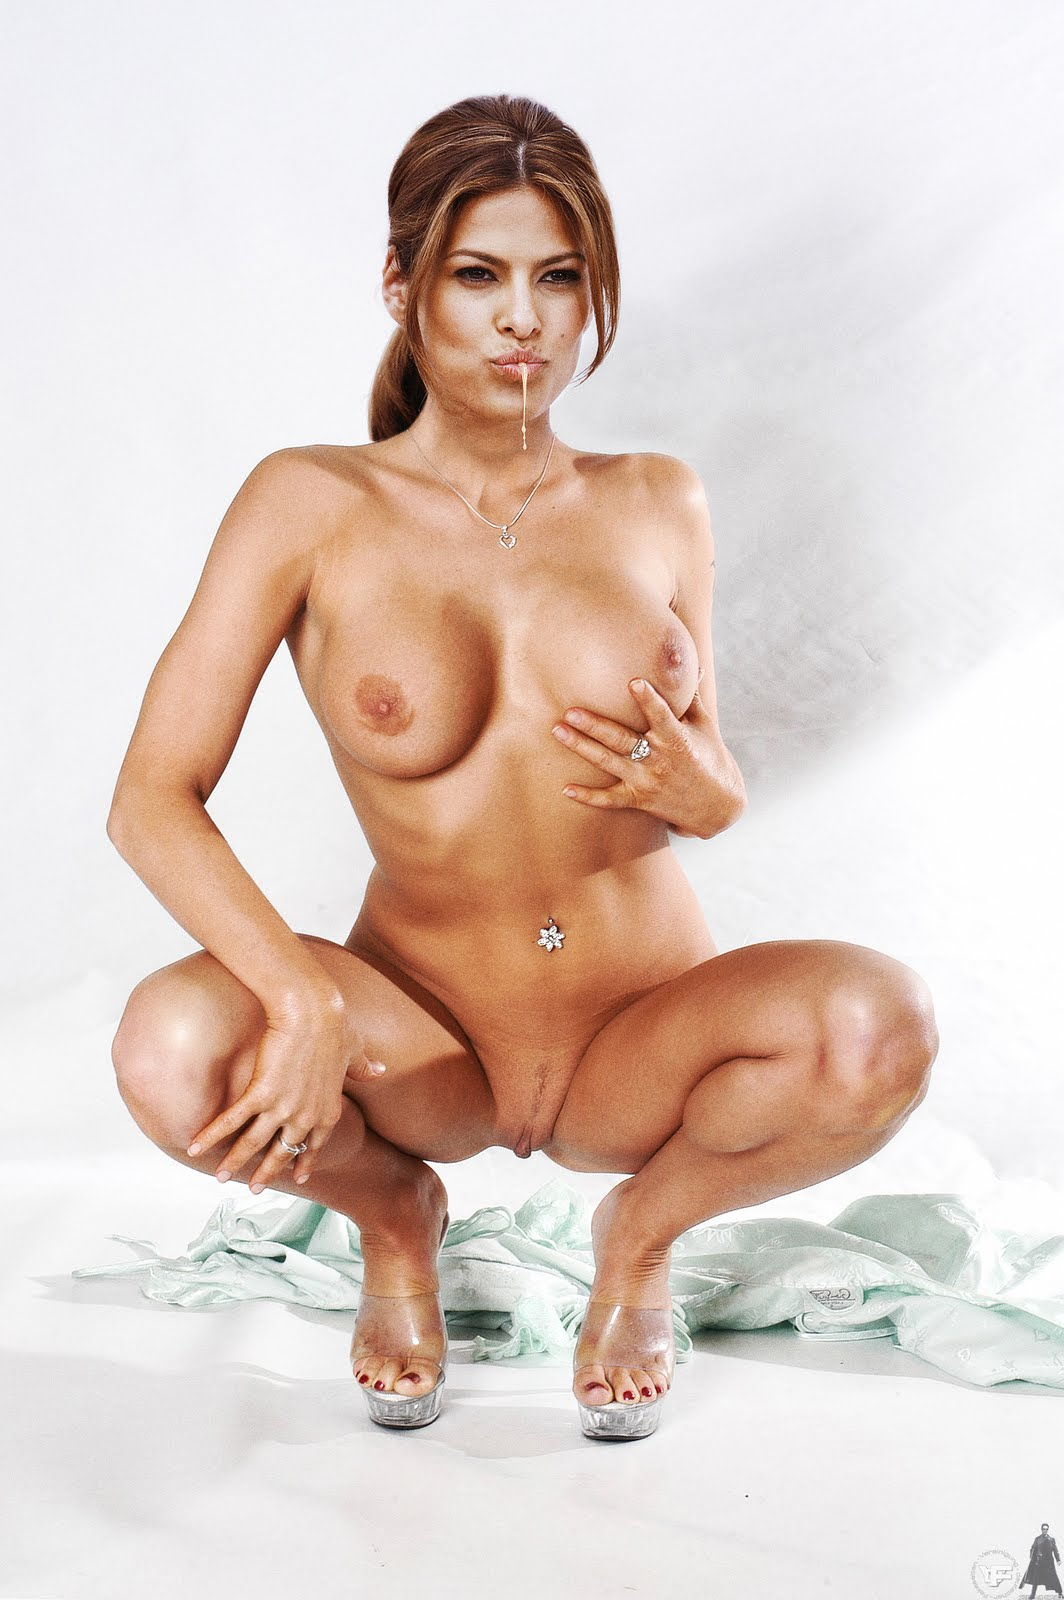 girl-eva-mendes-nude-gallery-asian